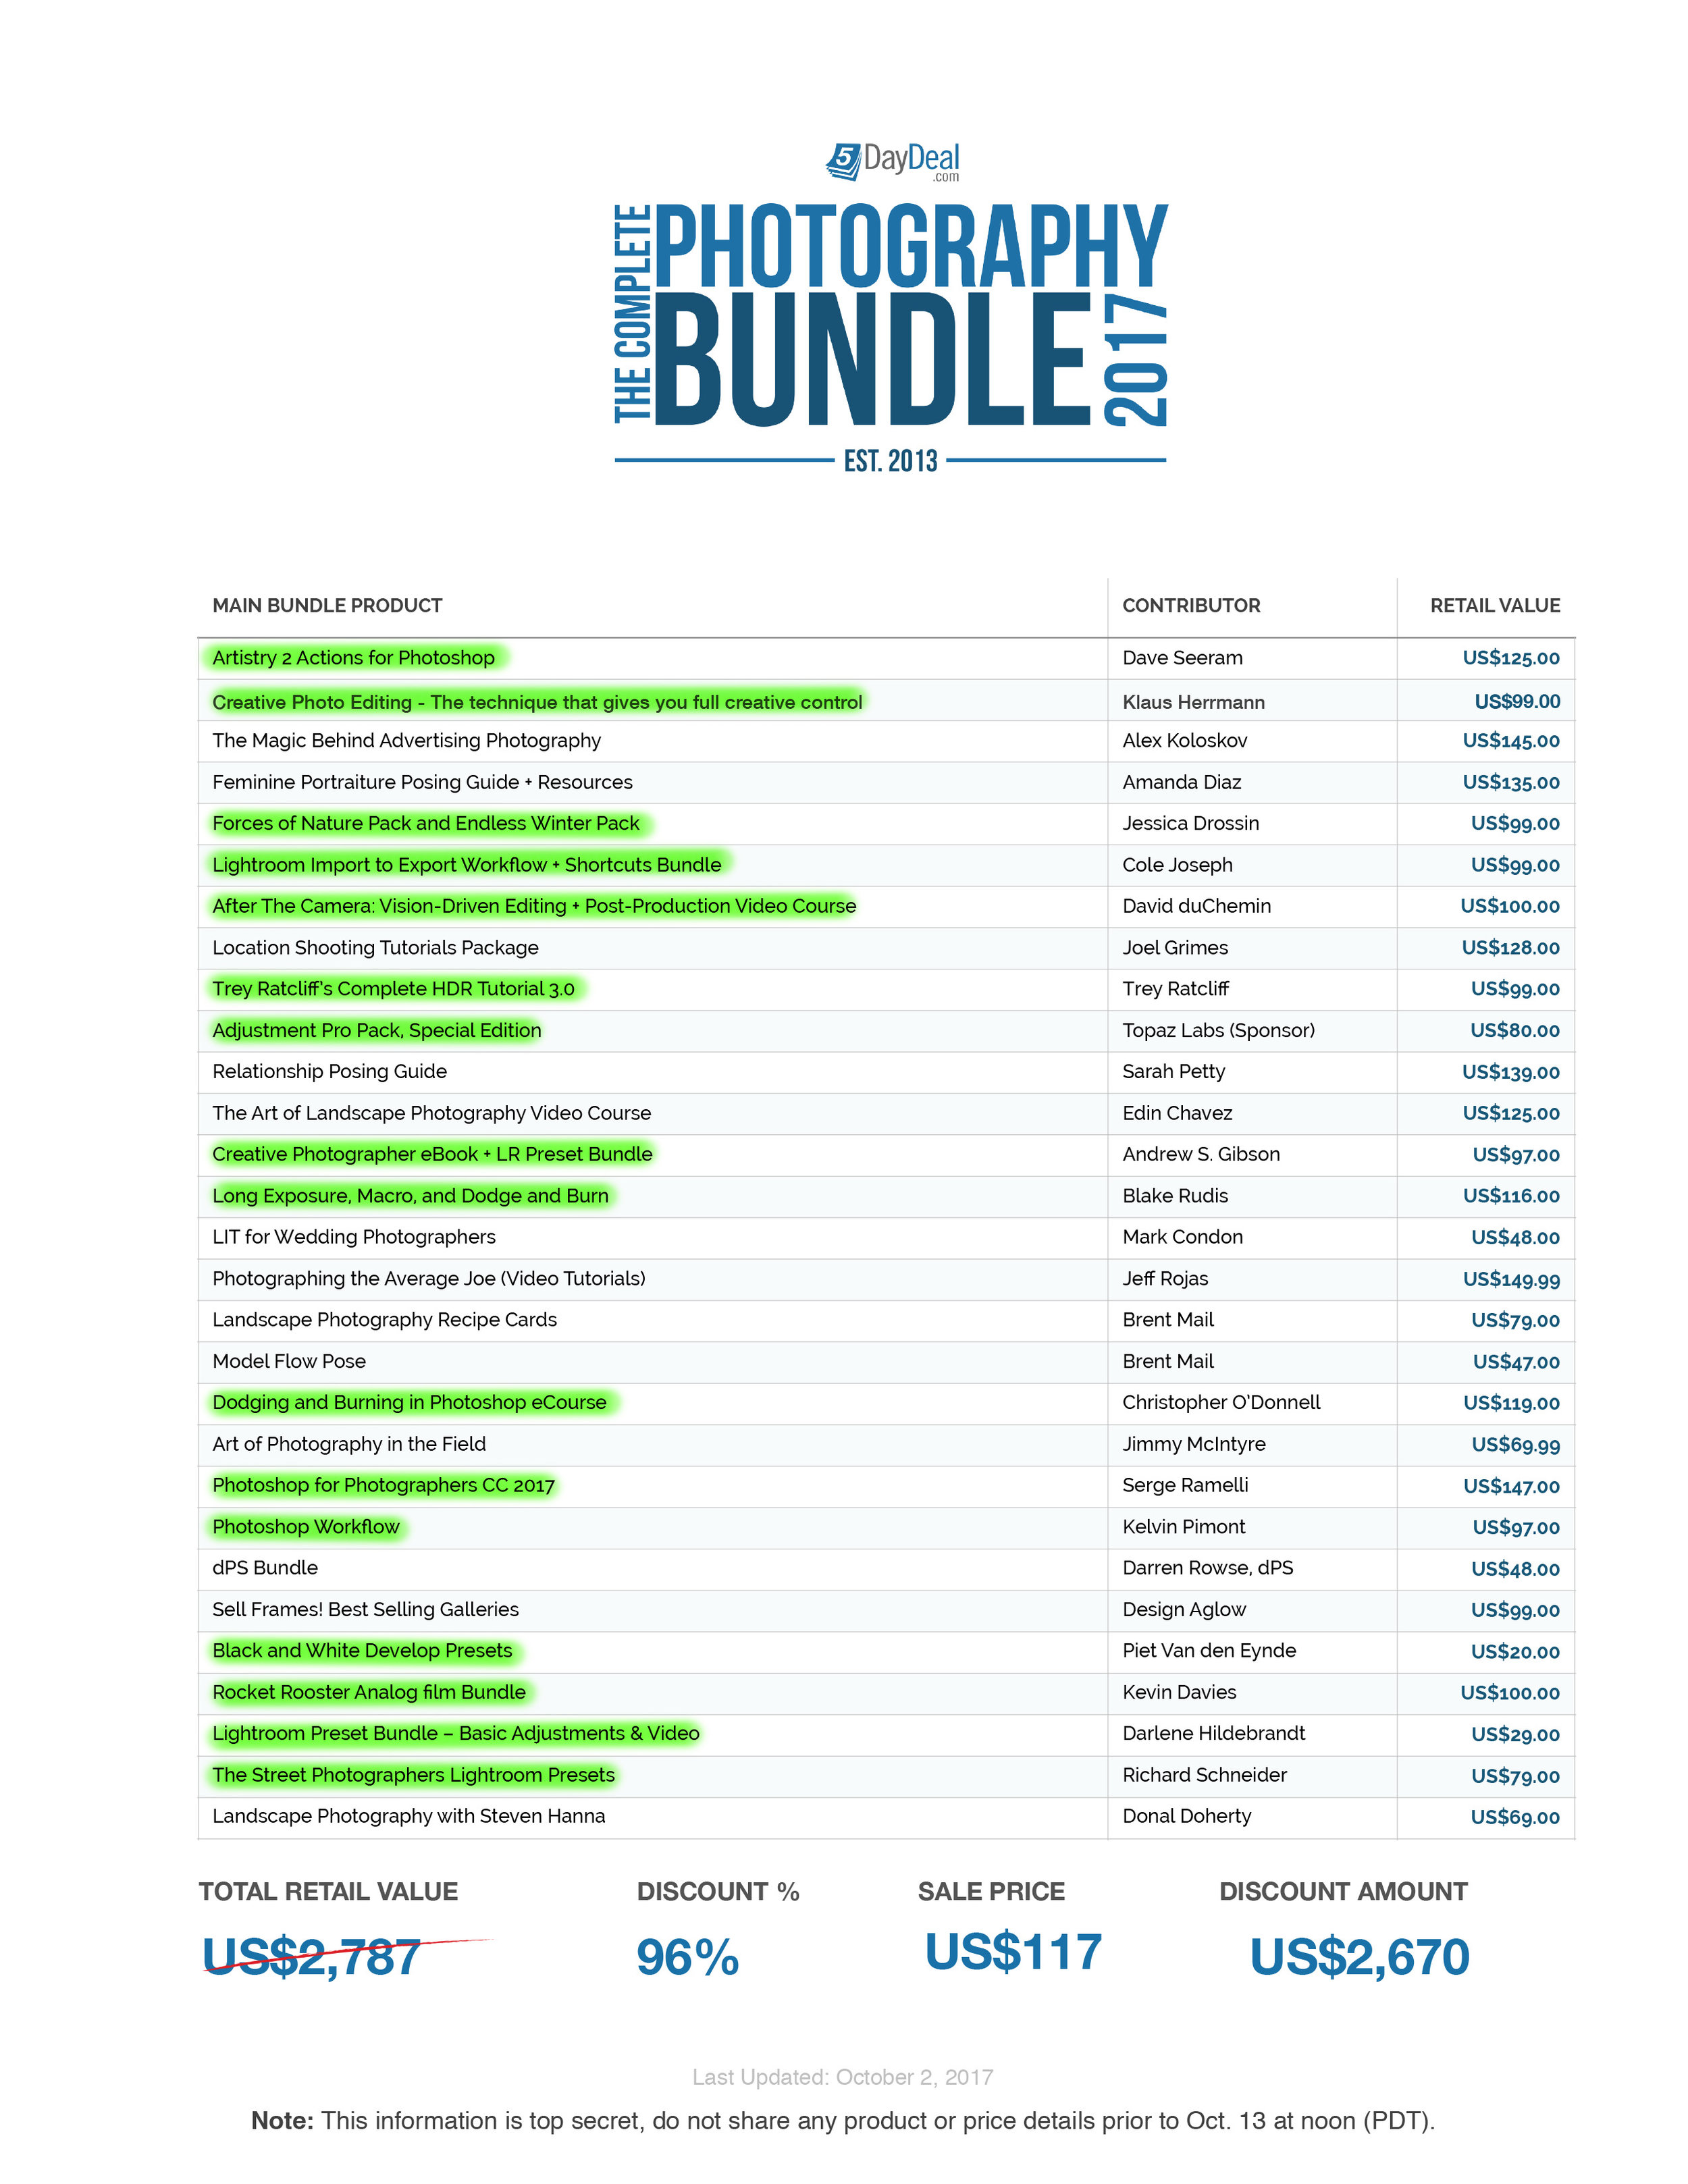 Copy of 5DayDeal -  Complete Photography Bundle 2017 - Full Product List